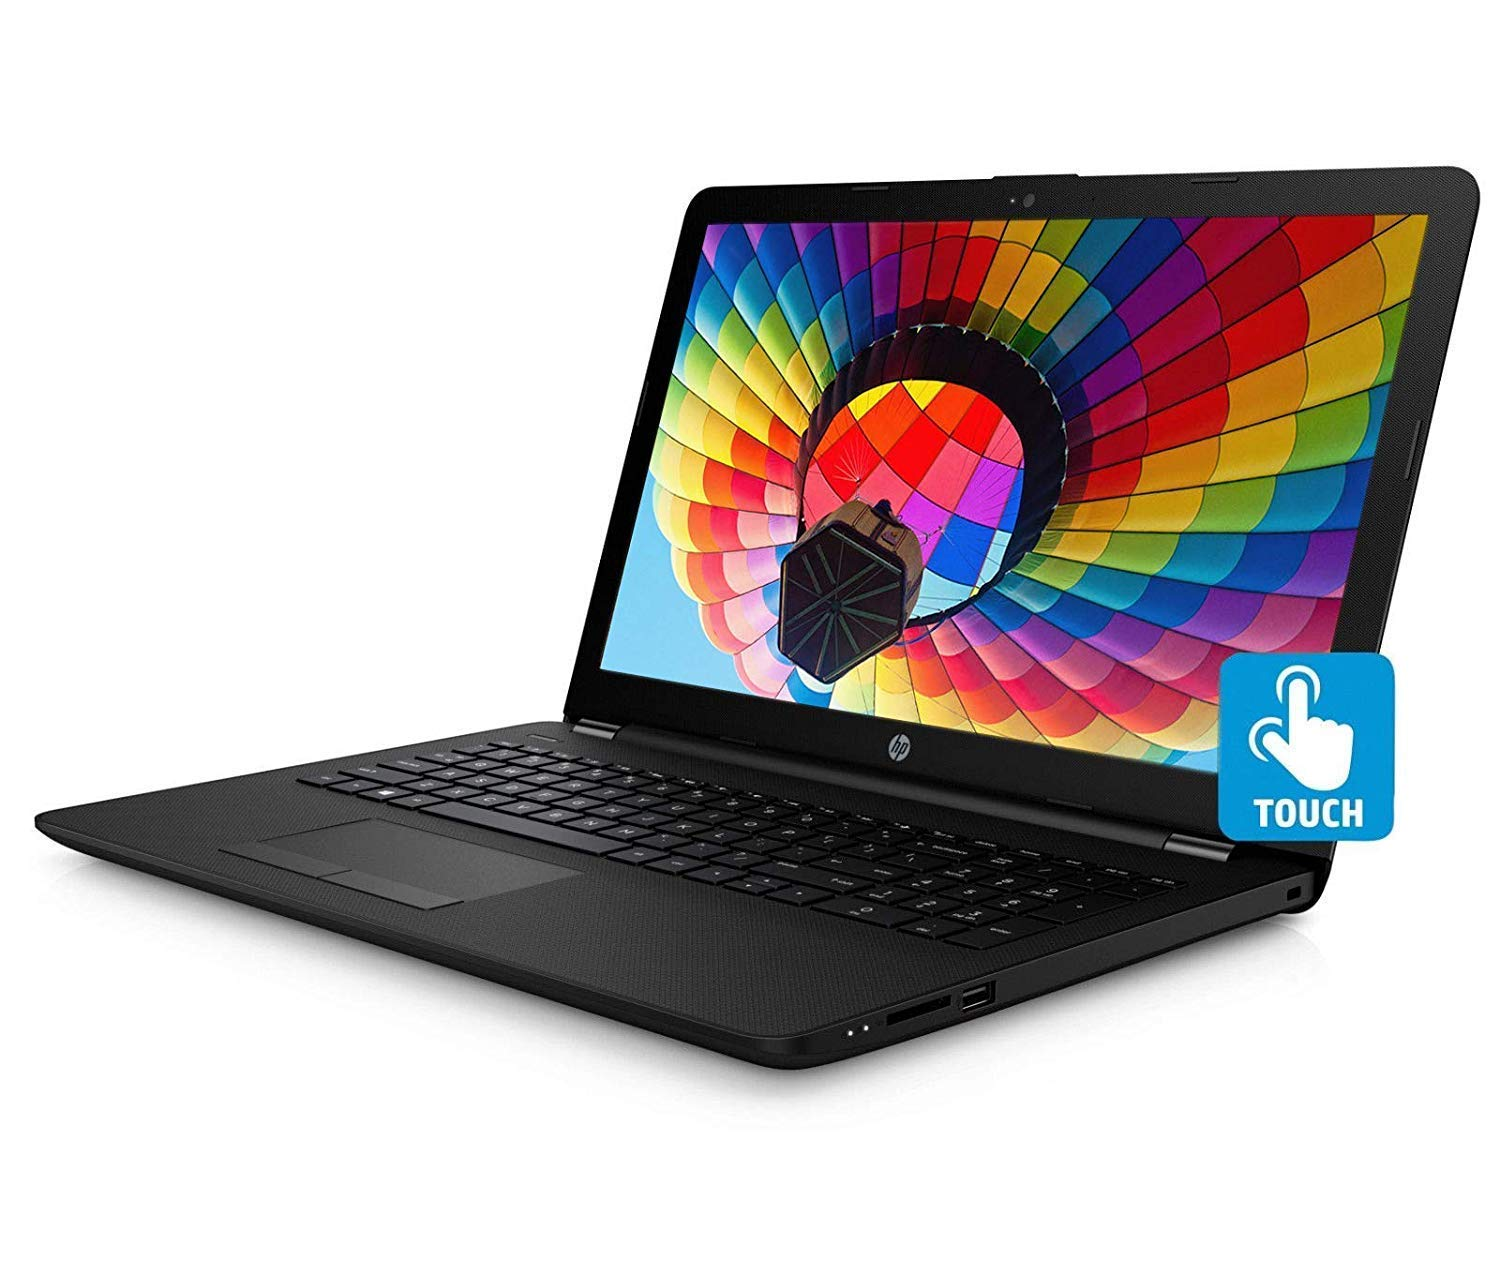 hp-156-hd-2019-new-touch-screen-laptop-notebook-computer-intel-pentium-quad-core-n5000-up-to-27-ghz-8gb-ddr4-1tb-hdd-bluetooth-wi-fi-hdmi-webcam-win-10